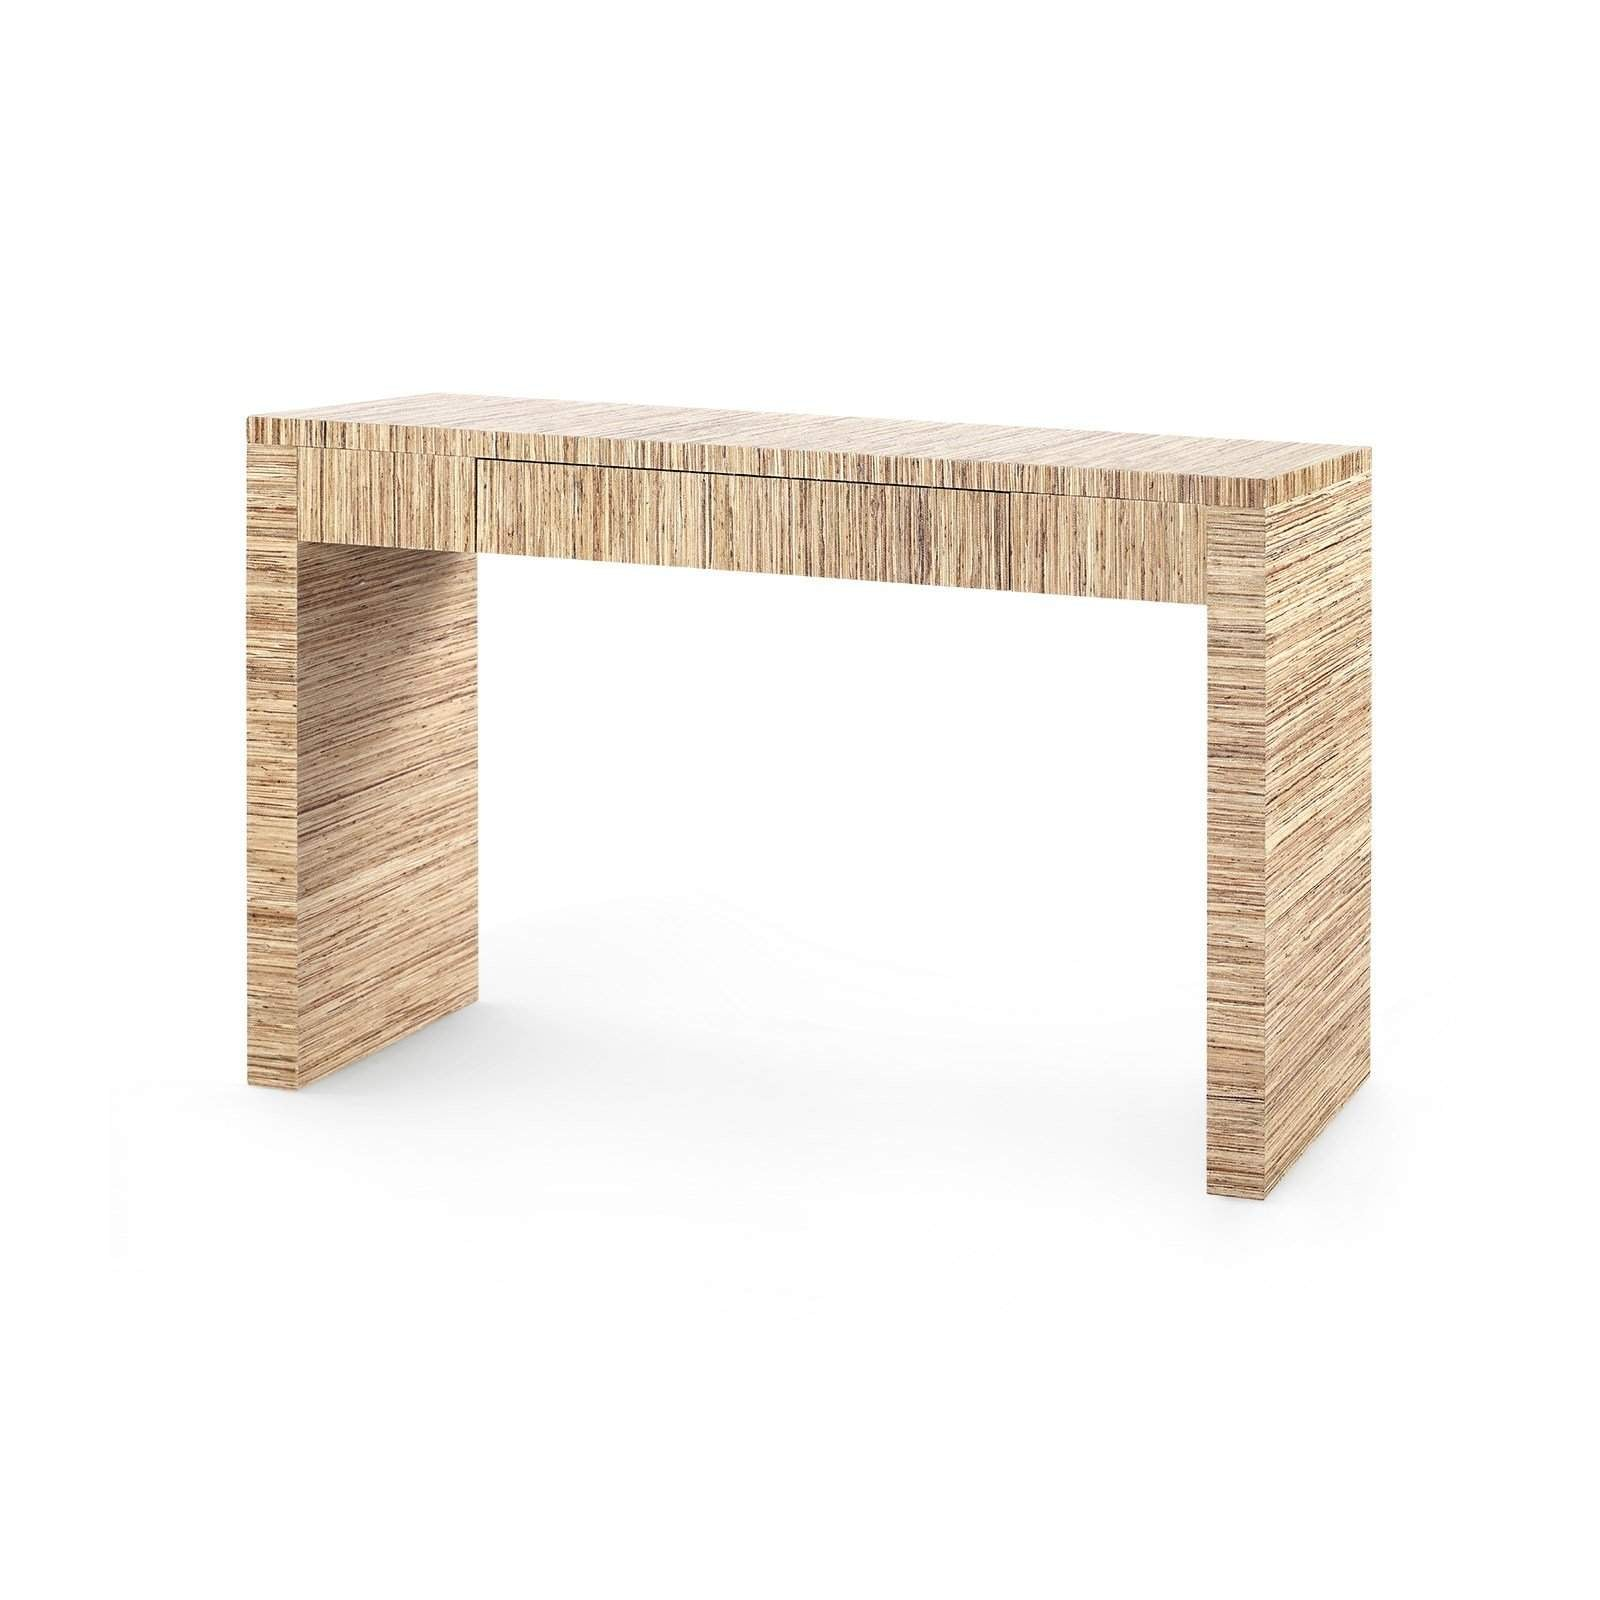 Bungalow 5 - MORGAN PAPYRUS CONSOLE TABLE in NATURAL